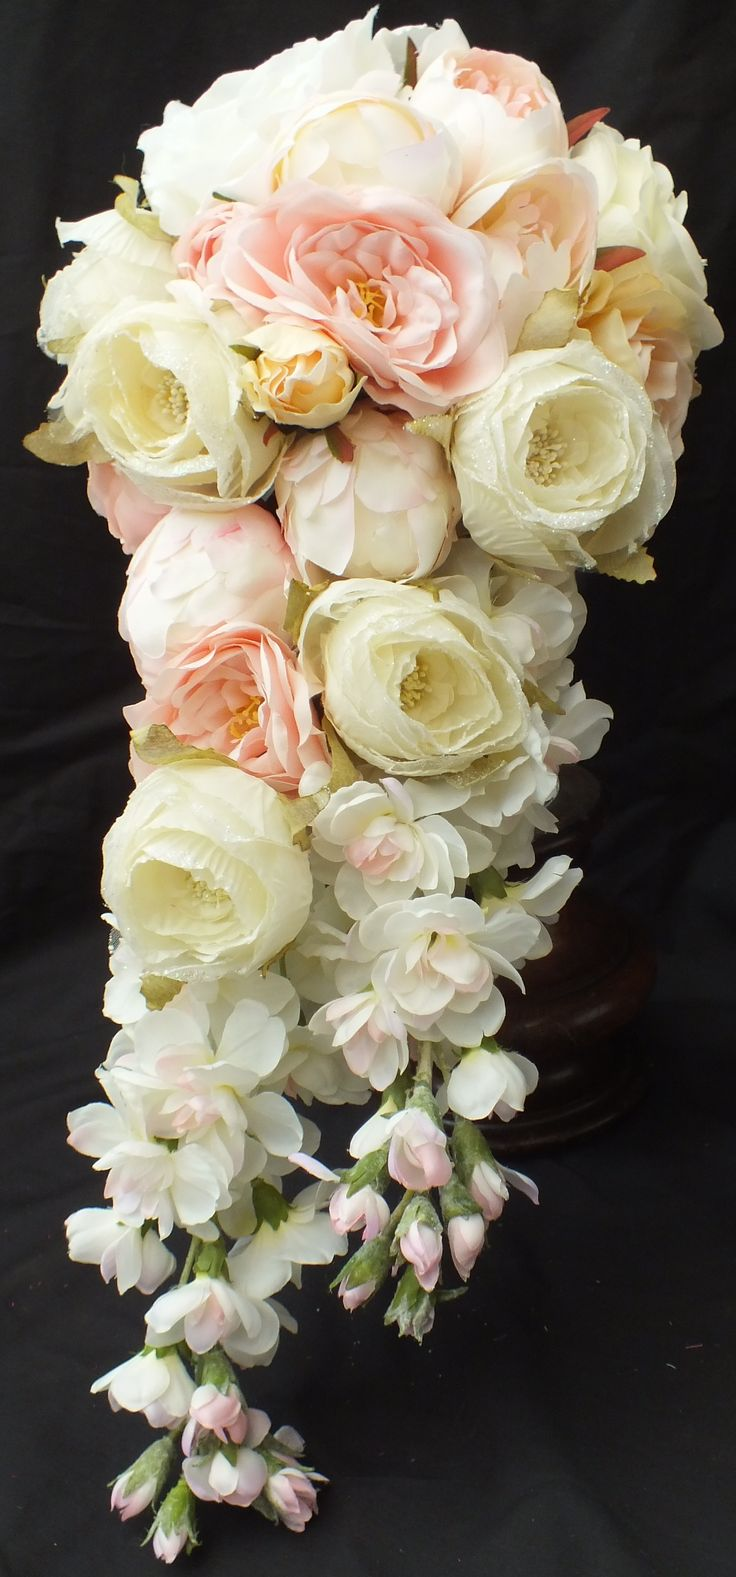 Garden Cascade bouquet with roses, peonies and delphiniums. In shades of white, ivory, pink and peach